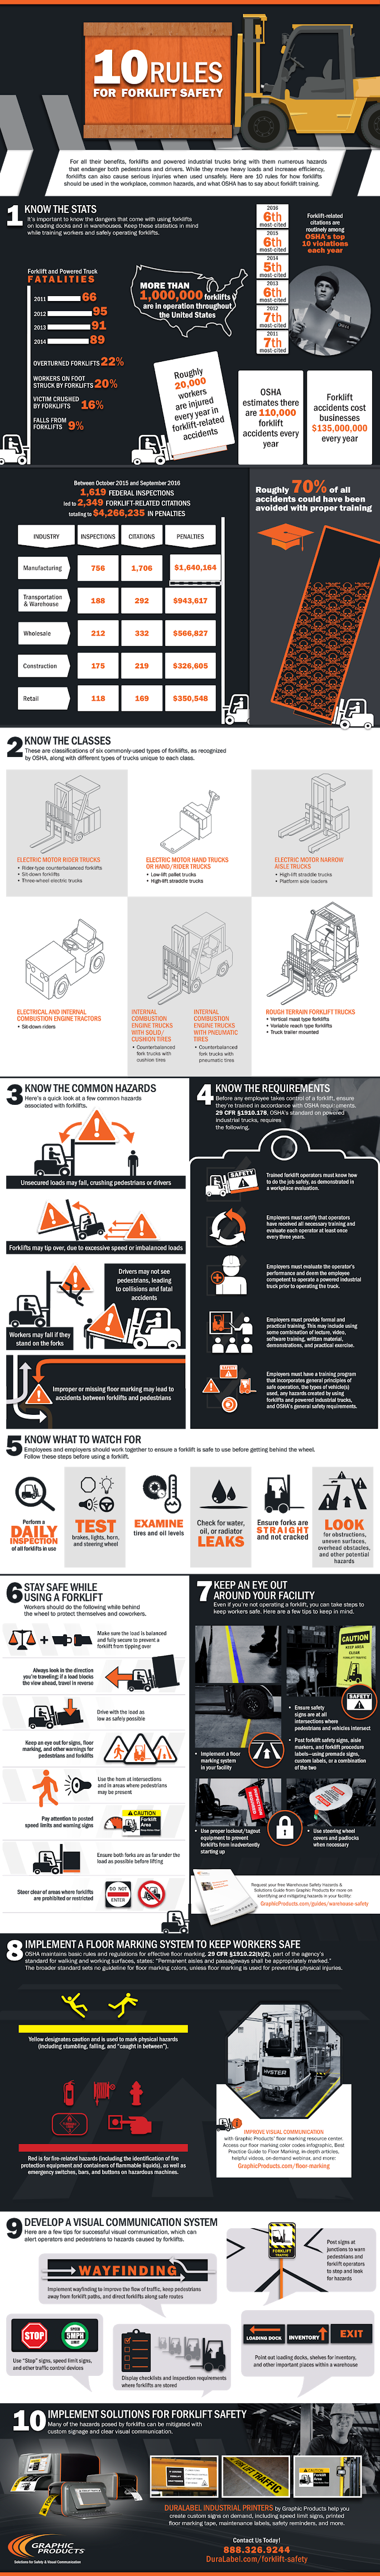 10 Rules For Forklift safety #infographic #Safety #Forklift Safety #Forklift